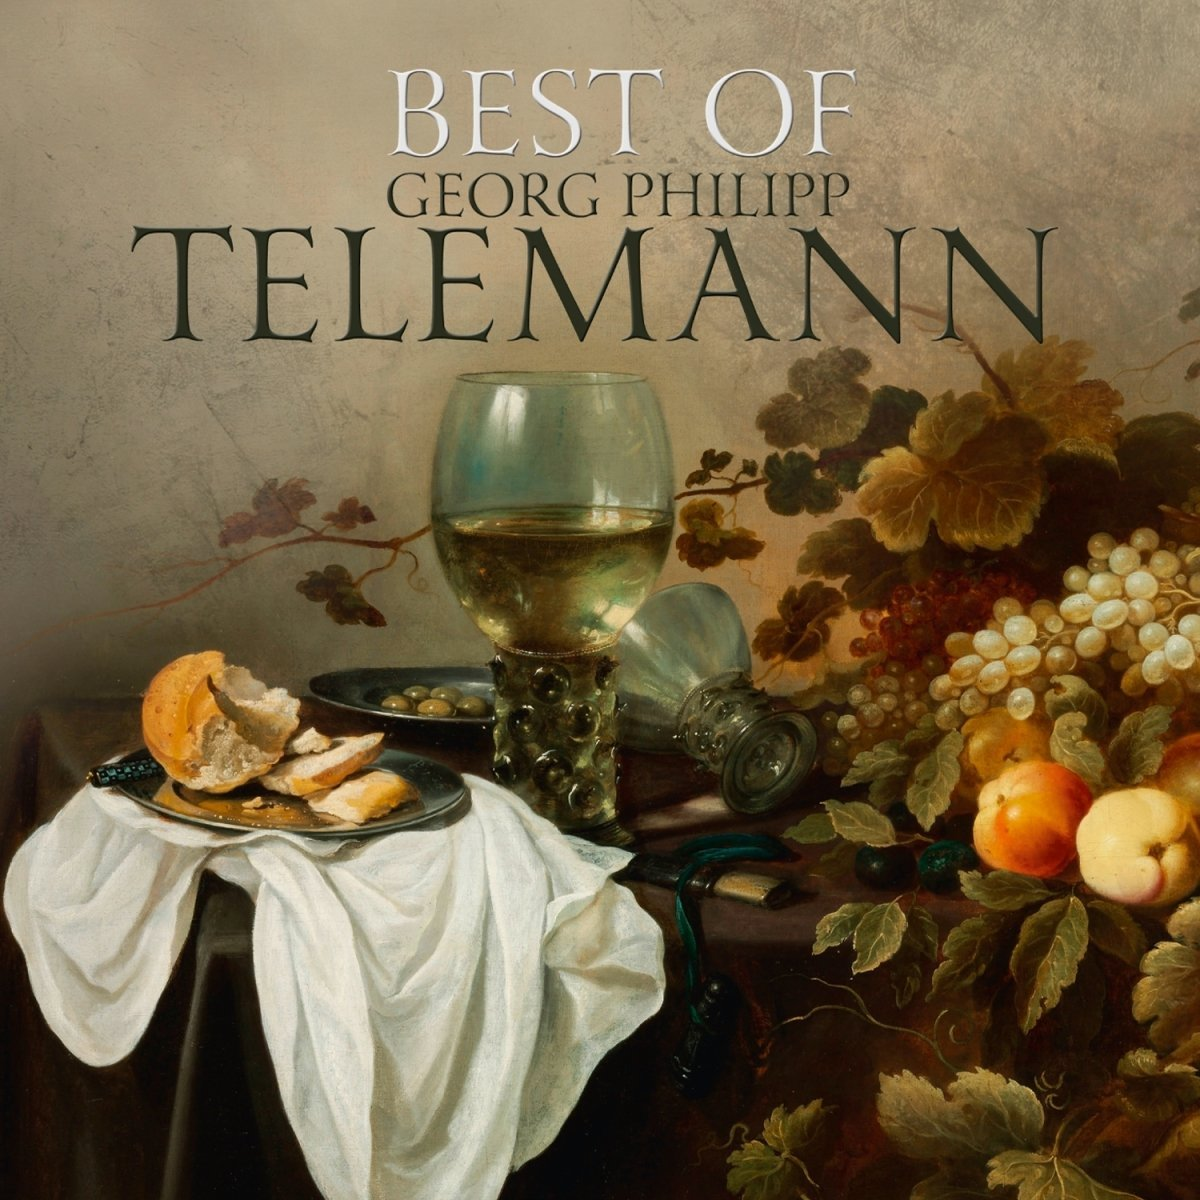 Best of Georg Philipp Telemann